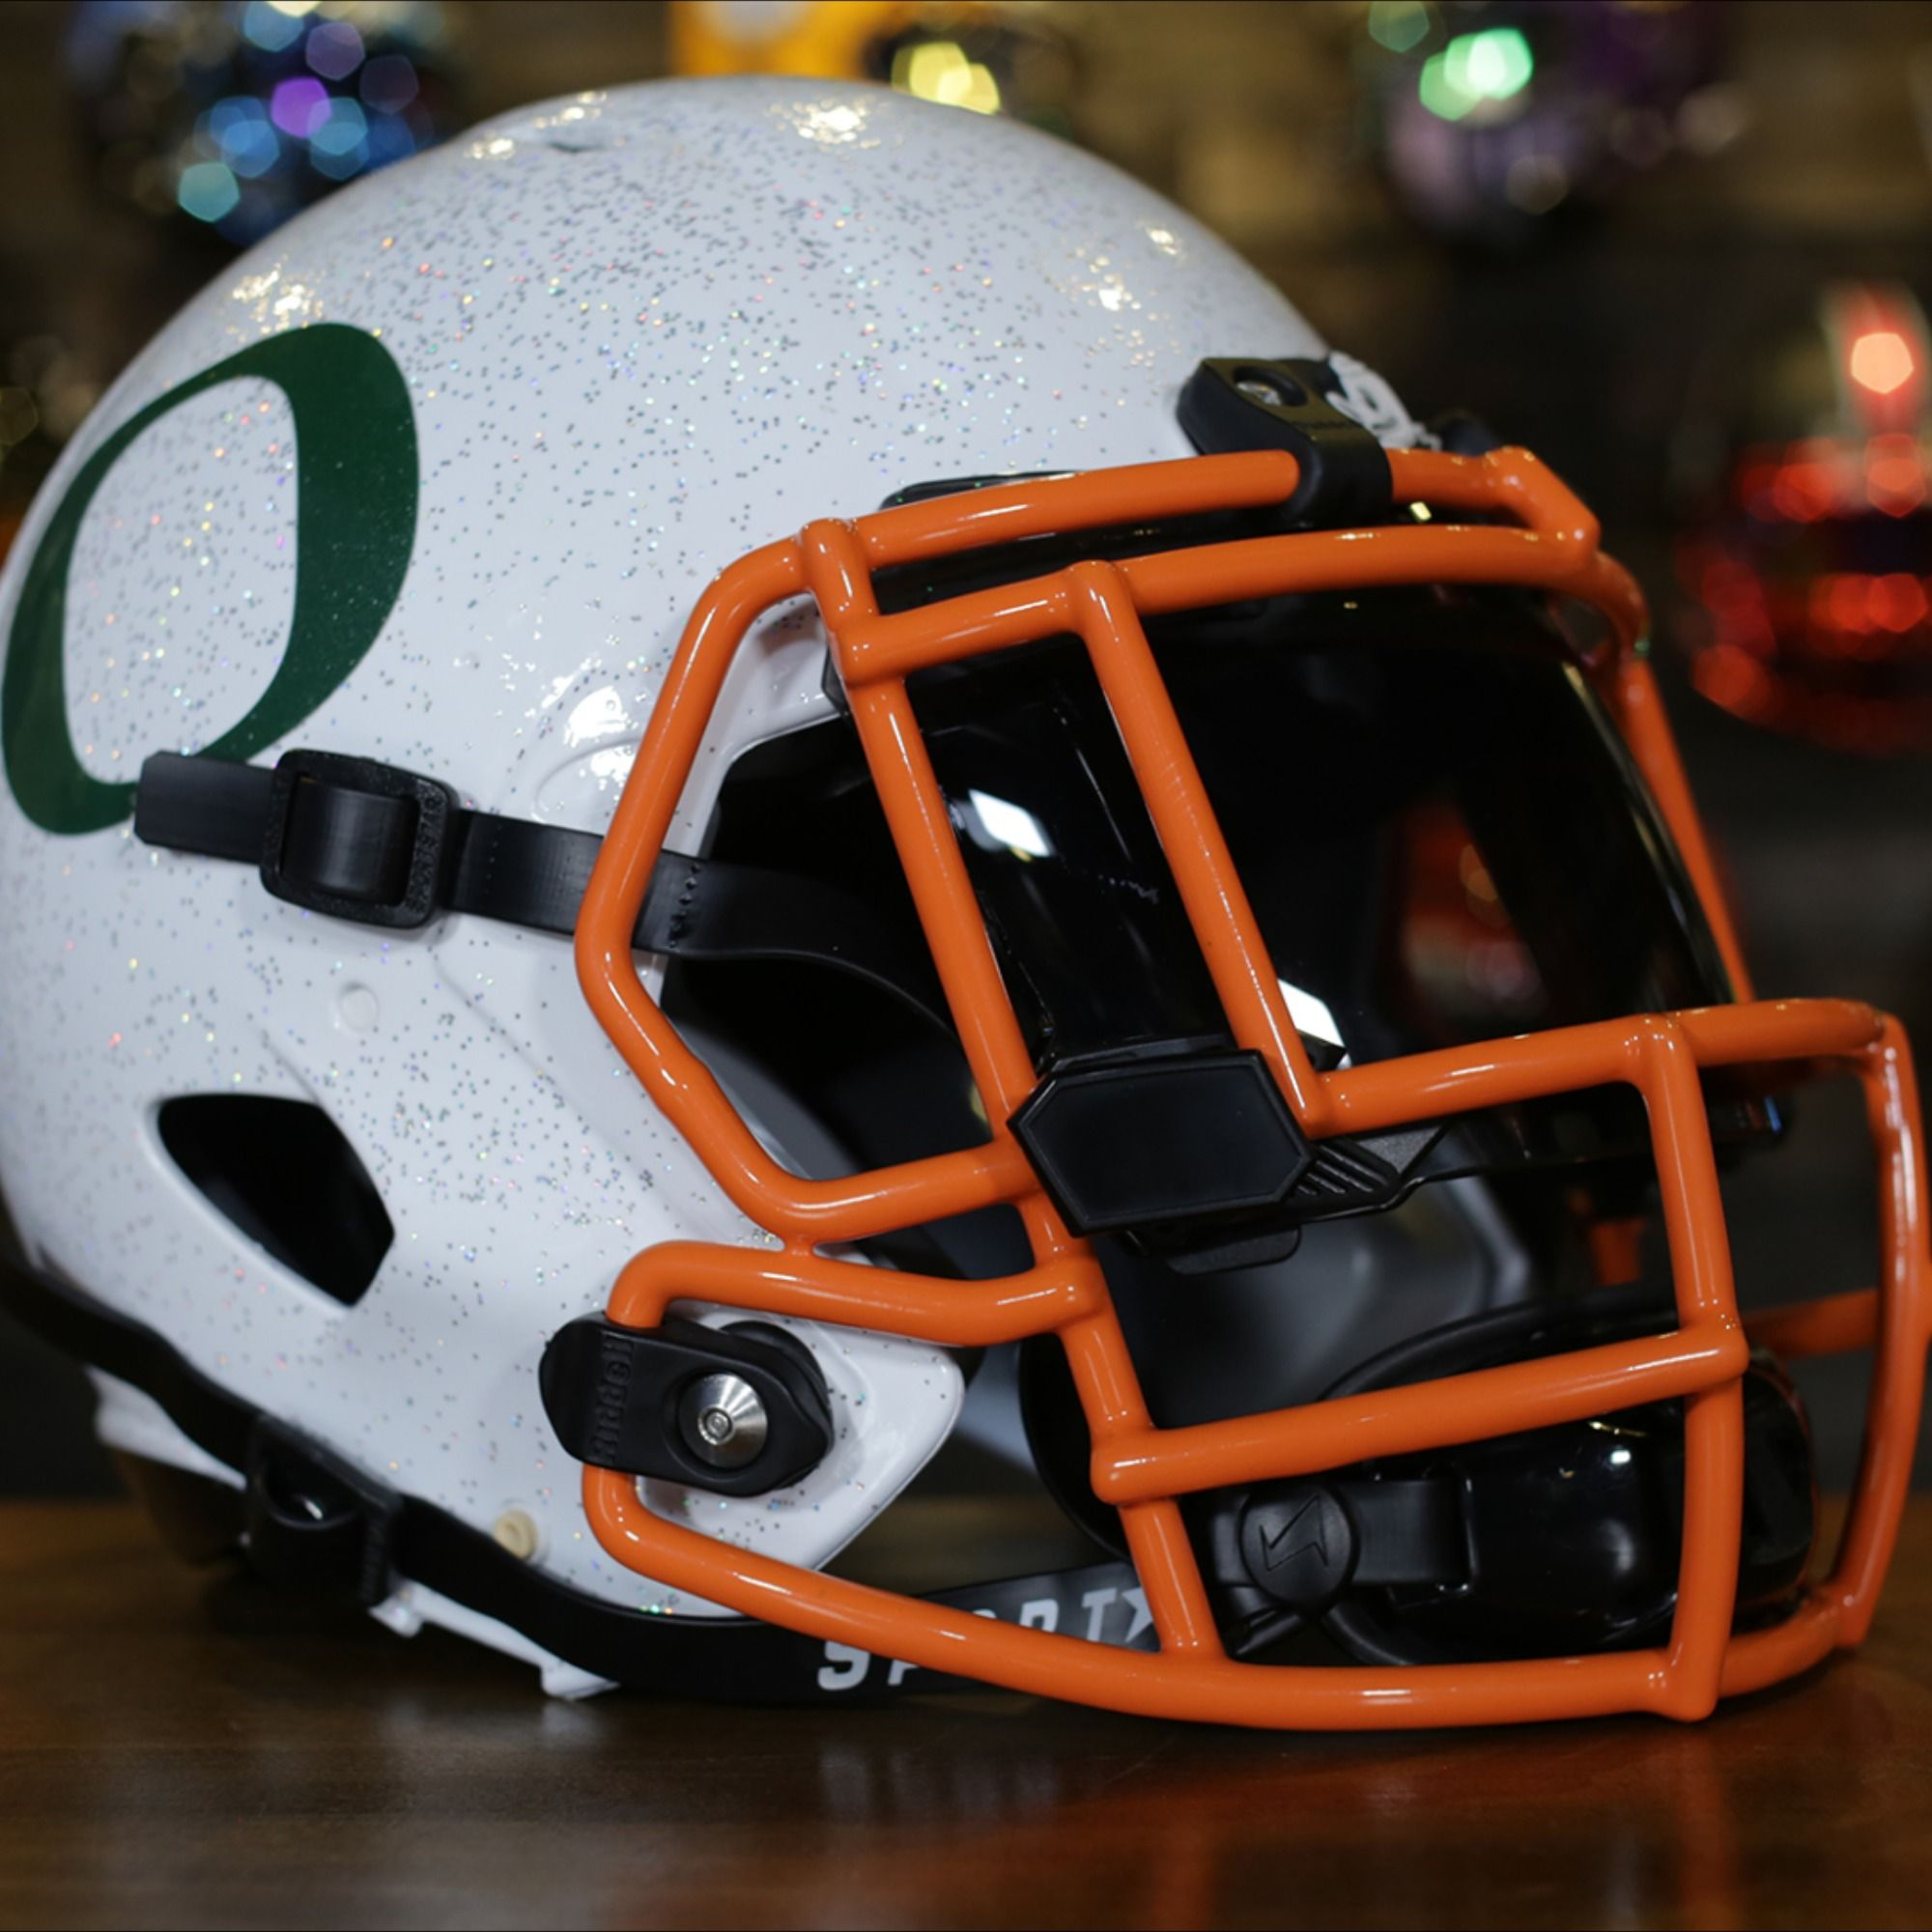 Custom Painted Oregon Helmet In 2020 Football Helmets Cool Football Helmets Helmet